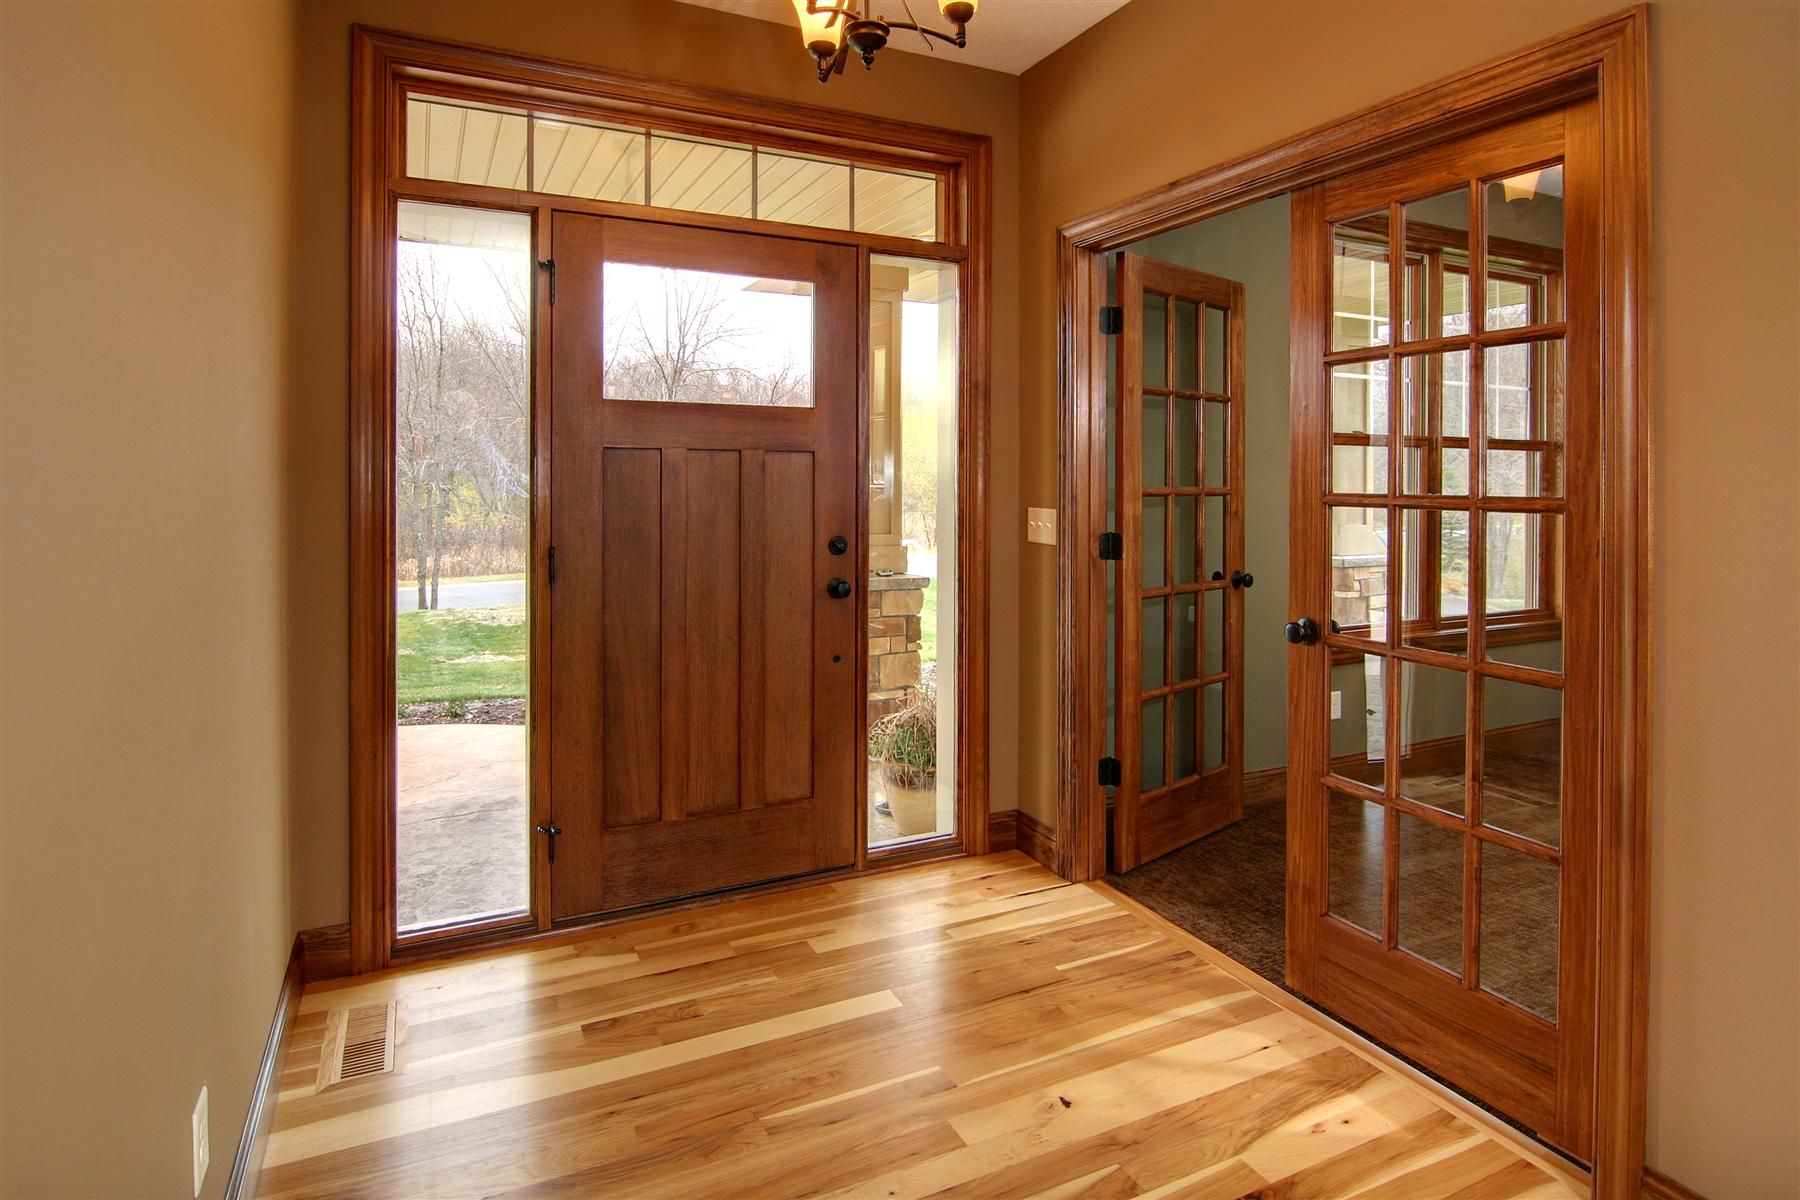 Hickory Floor Cherry stained doors and trim. COLOR Oak